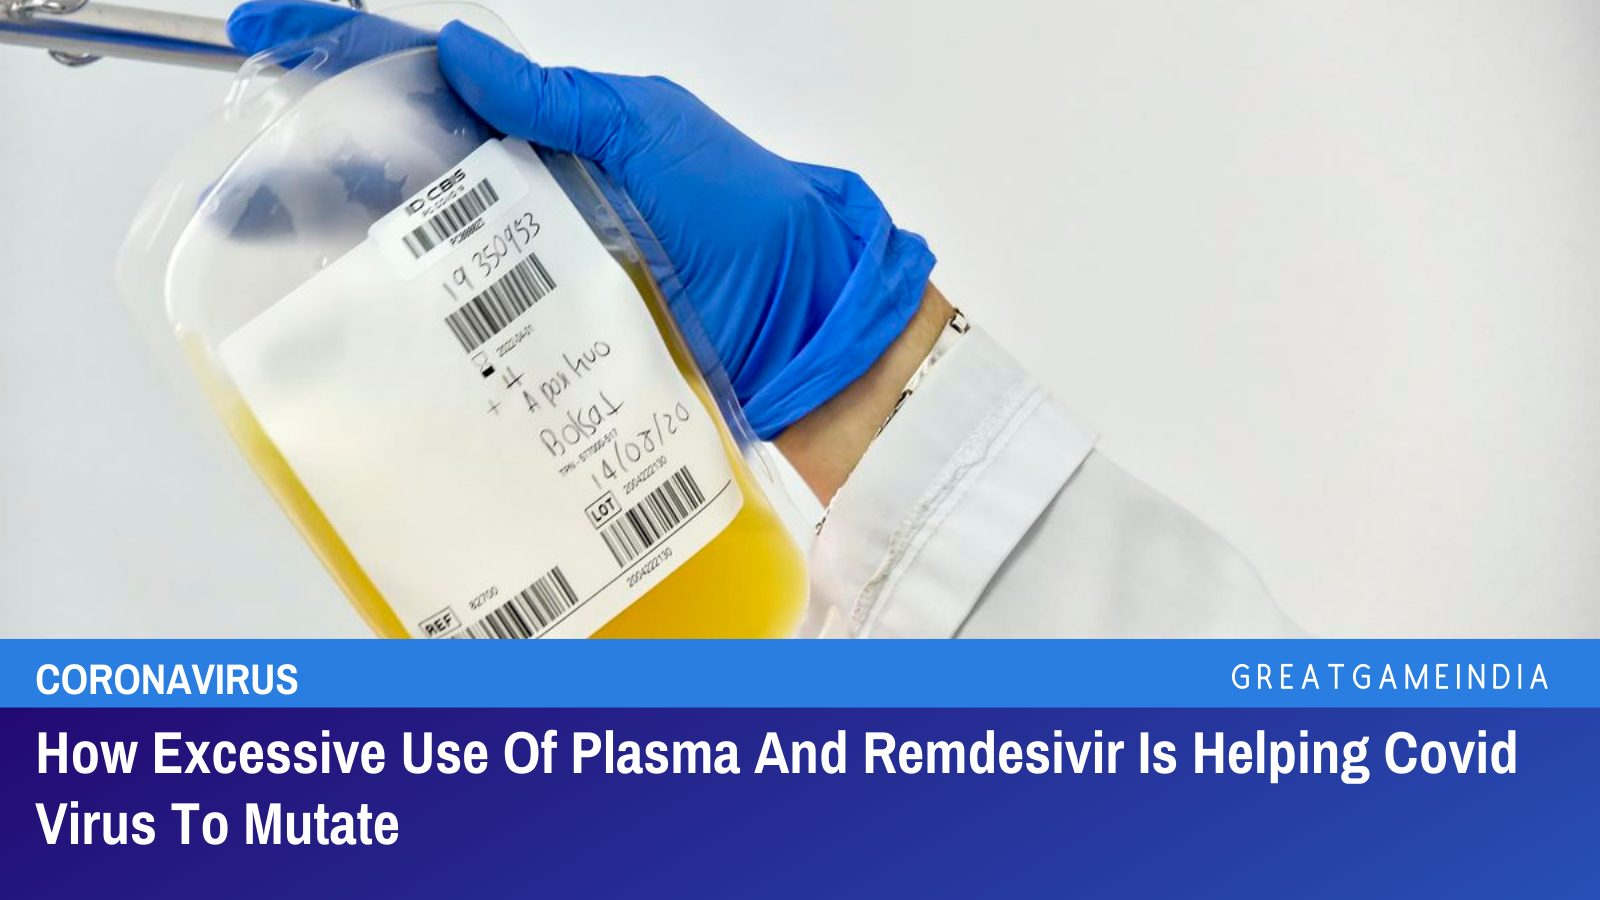 How Excessive Use Of Plasma And Remdesivir Is Helping Covid Virus To Mutate